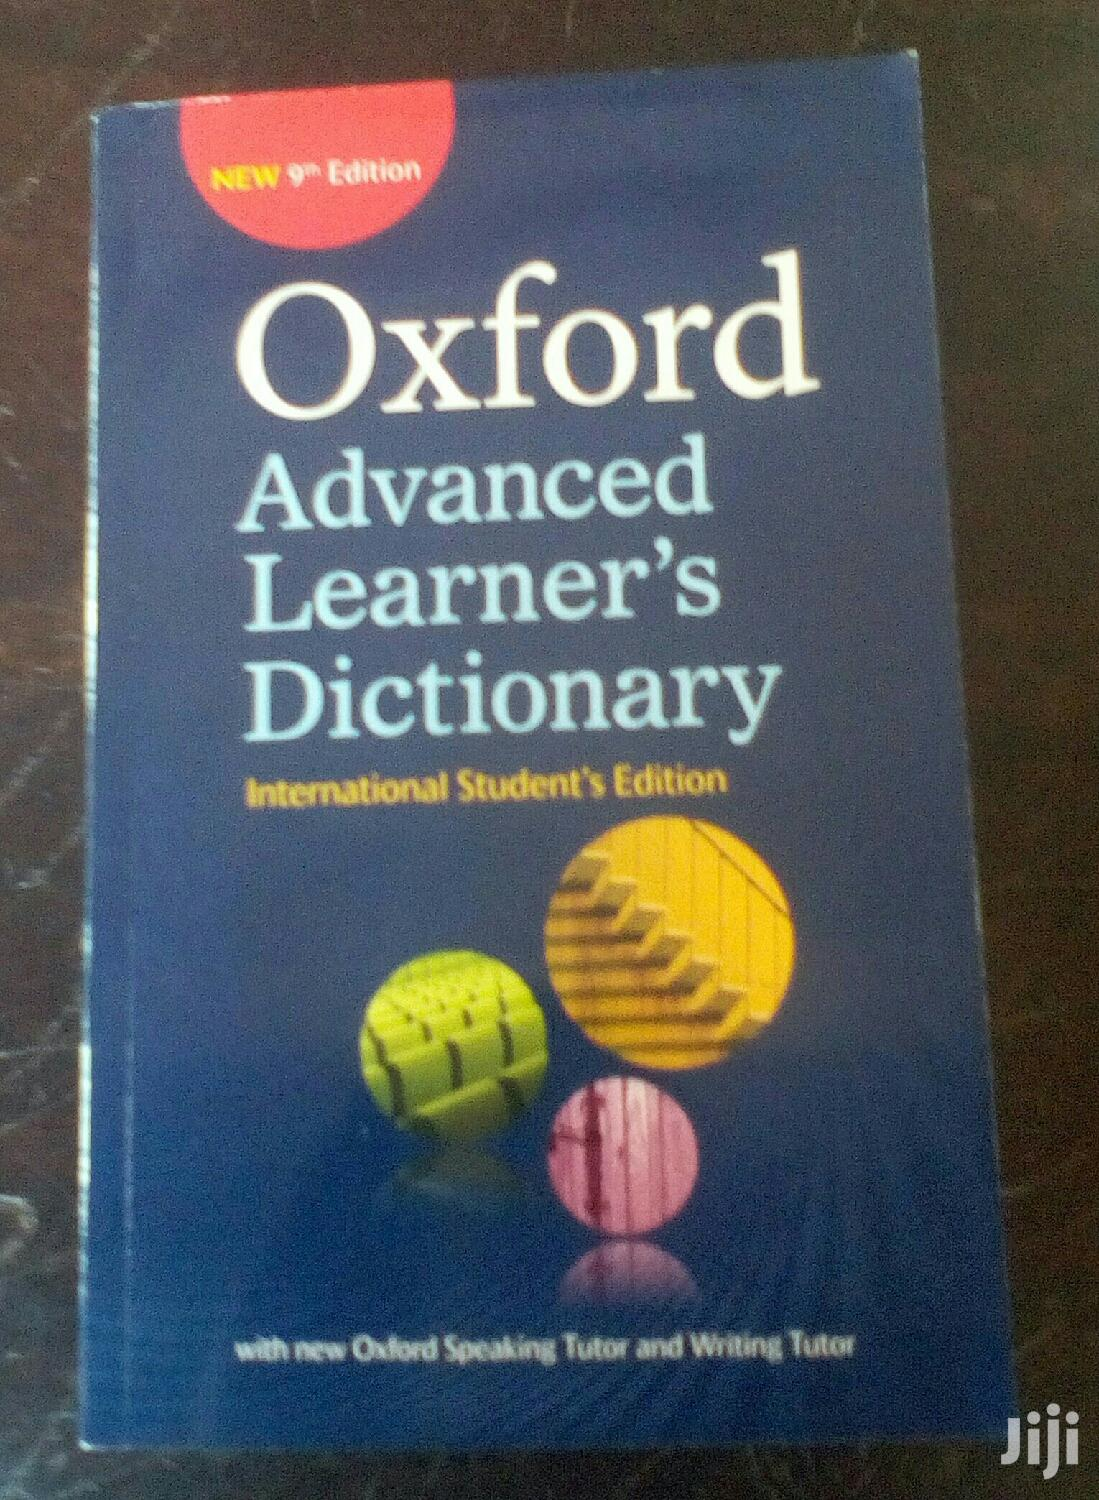 9th Edtion Oxford Advanced Dictionary